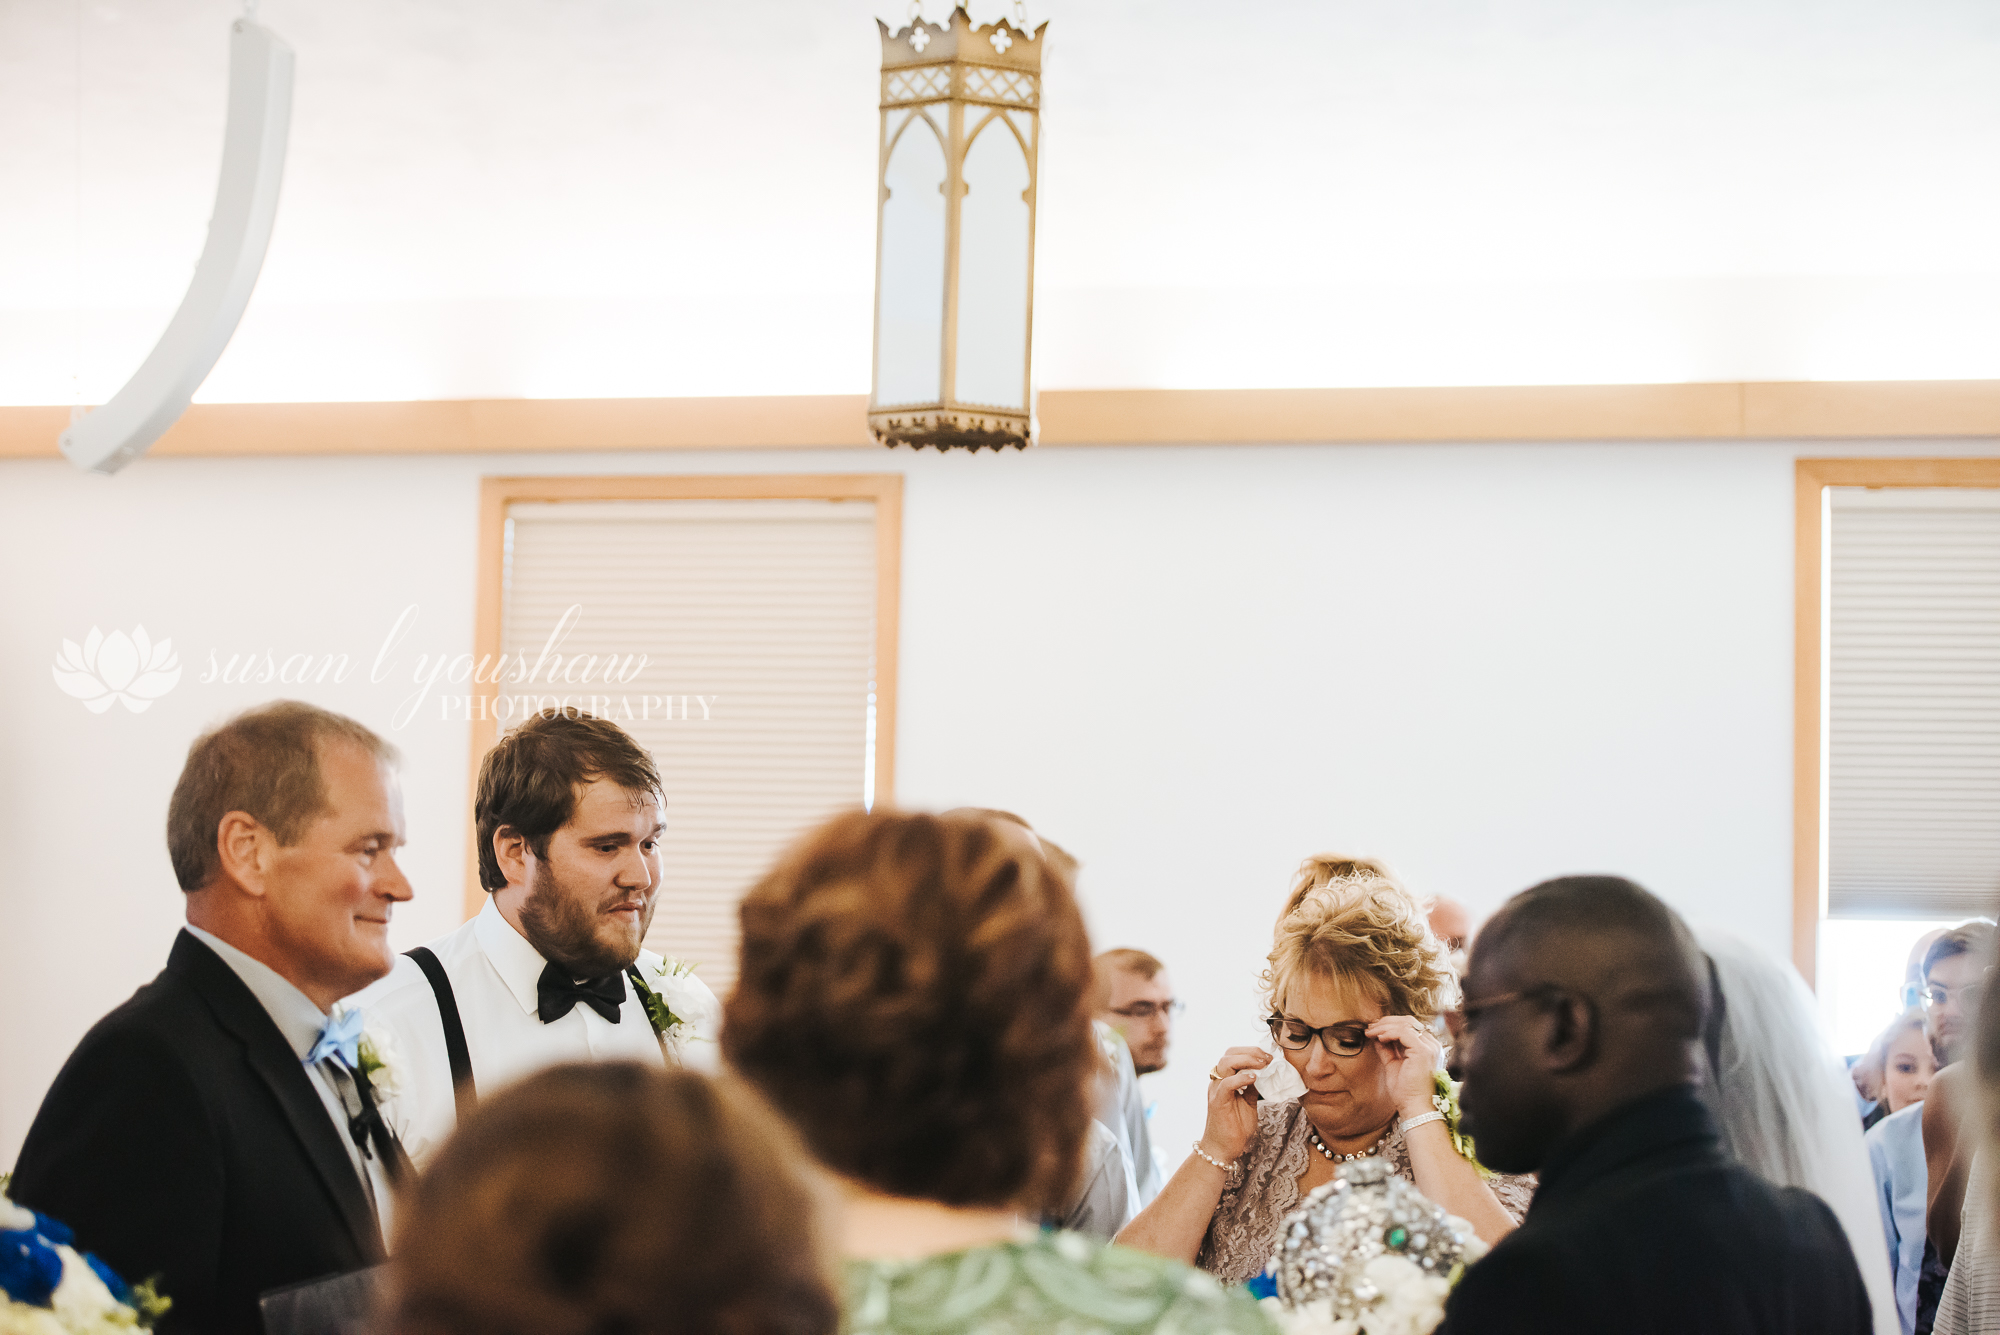 Katelyn and Wes Wedding Photos 07-13-2019 SLY Photography-57.jpg